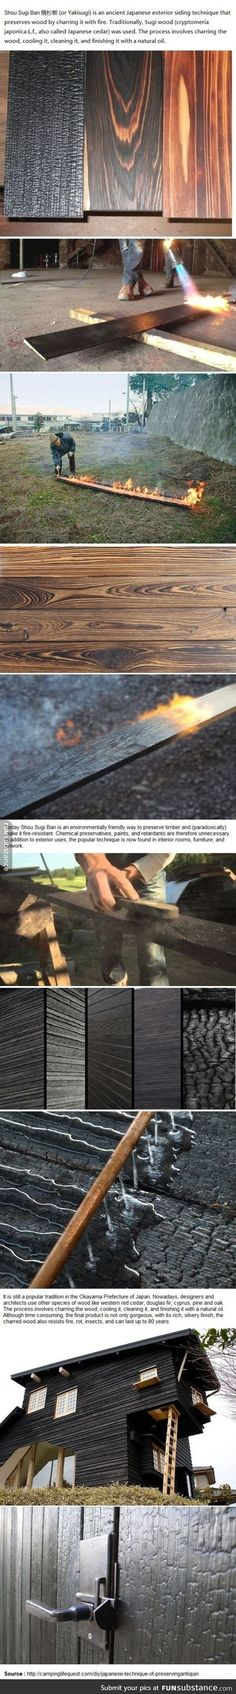 Japanese technique of preserving/antiquing wood